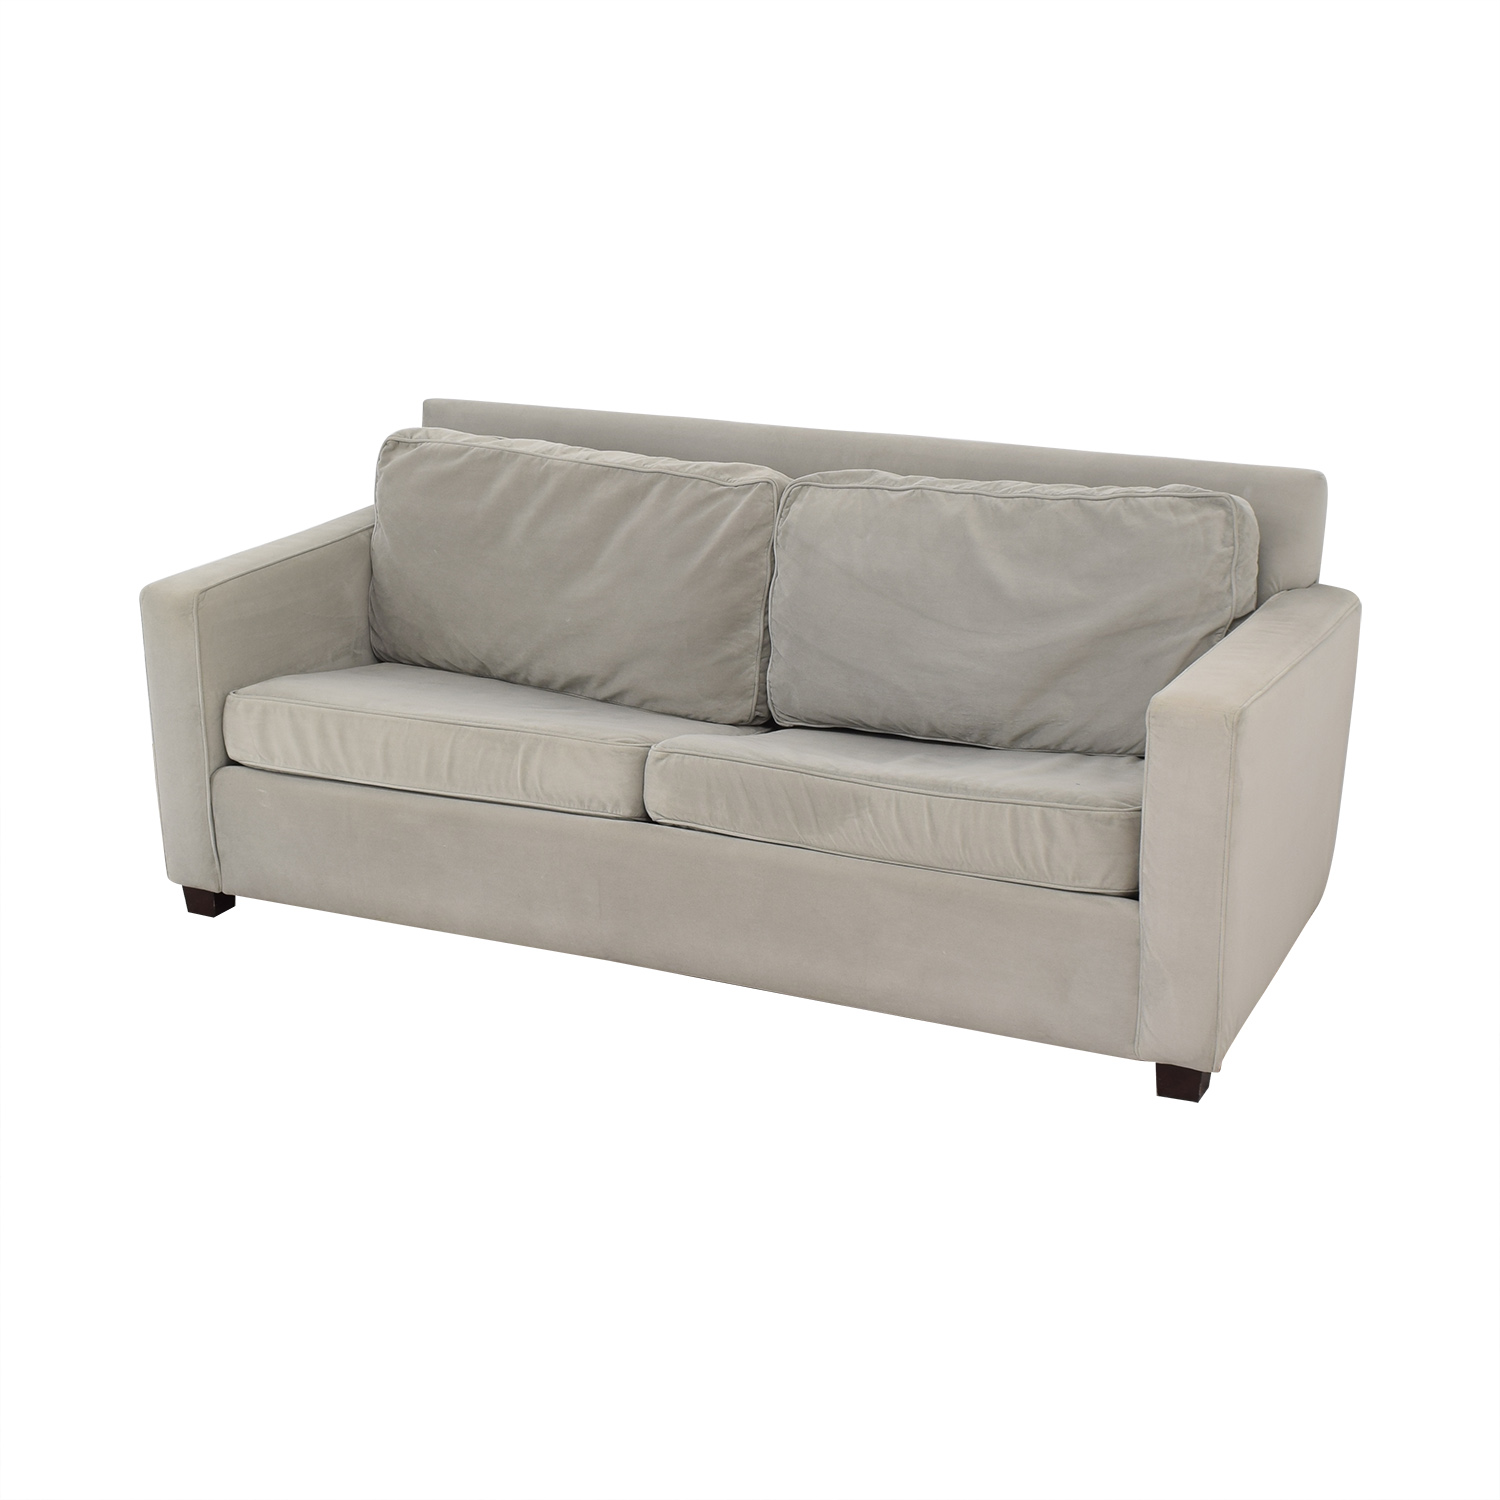 West Elm Henry Basic Queen Sleeper Sofa sale